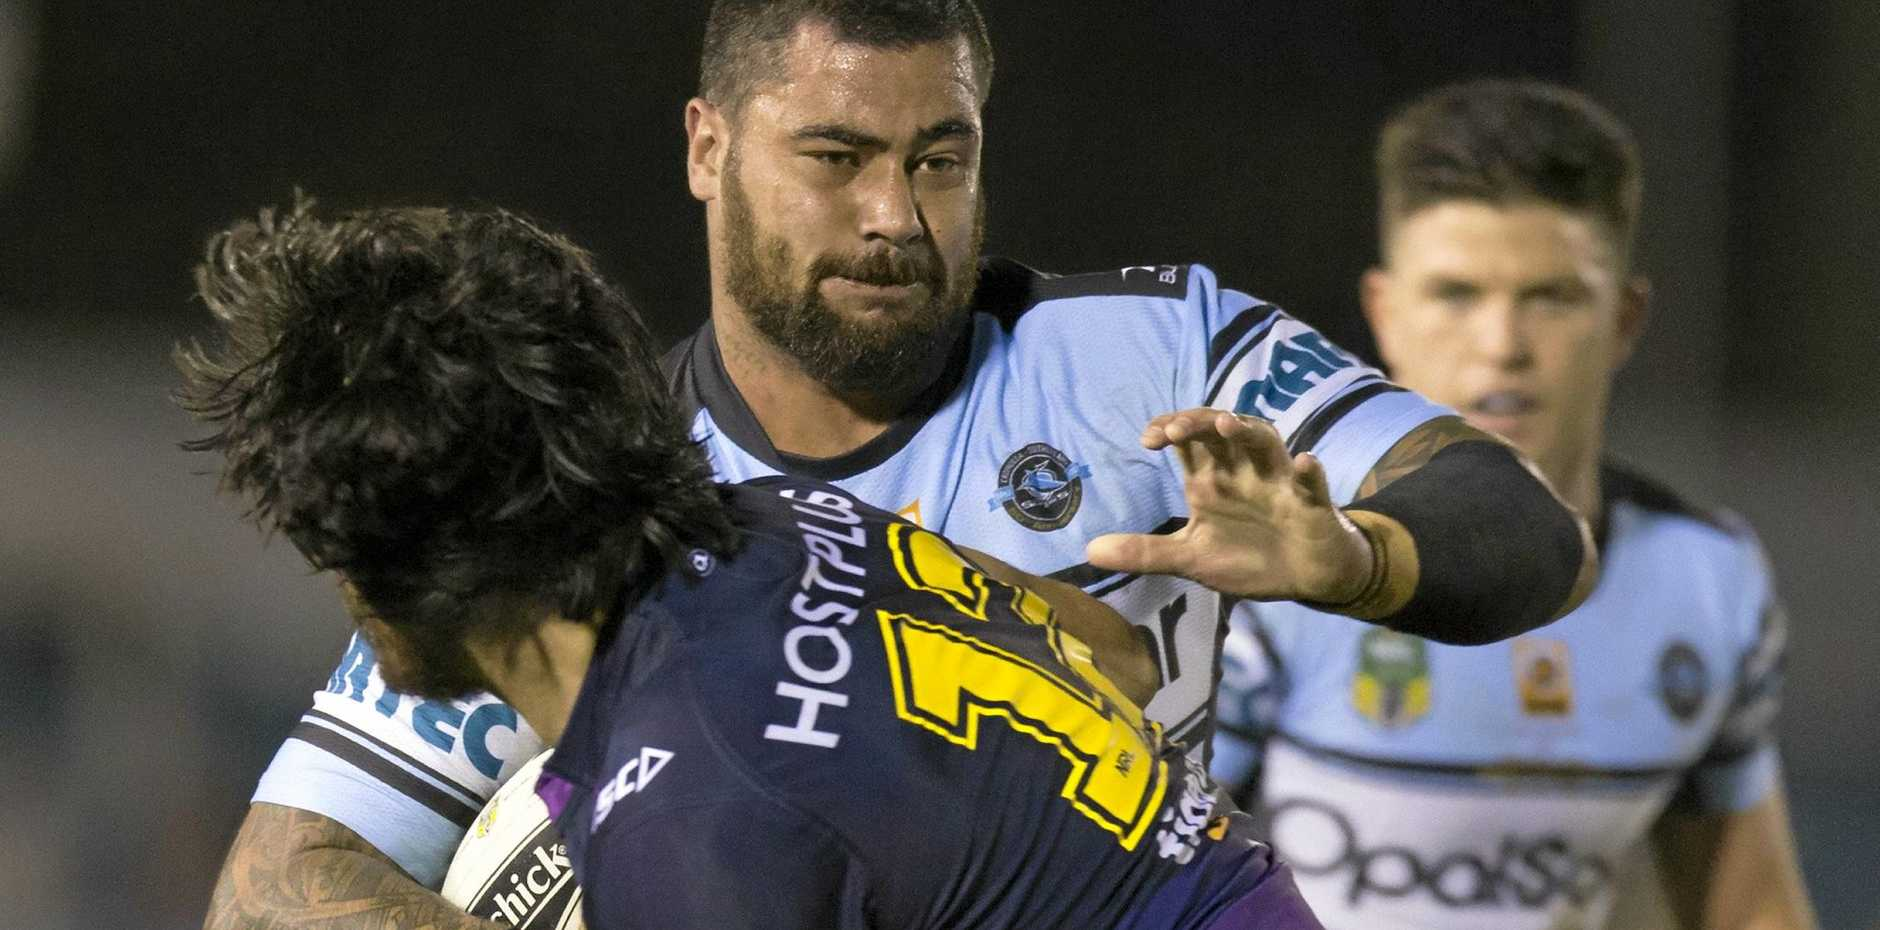 FORWARD: Andrew Fifita of the Sharks runs during the Round 14 NRL match between the Cronulla-Sutherland Sharks and the Melbourne Storm at Southern Cross Group Stadium.